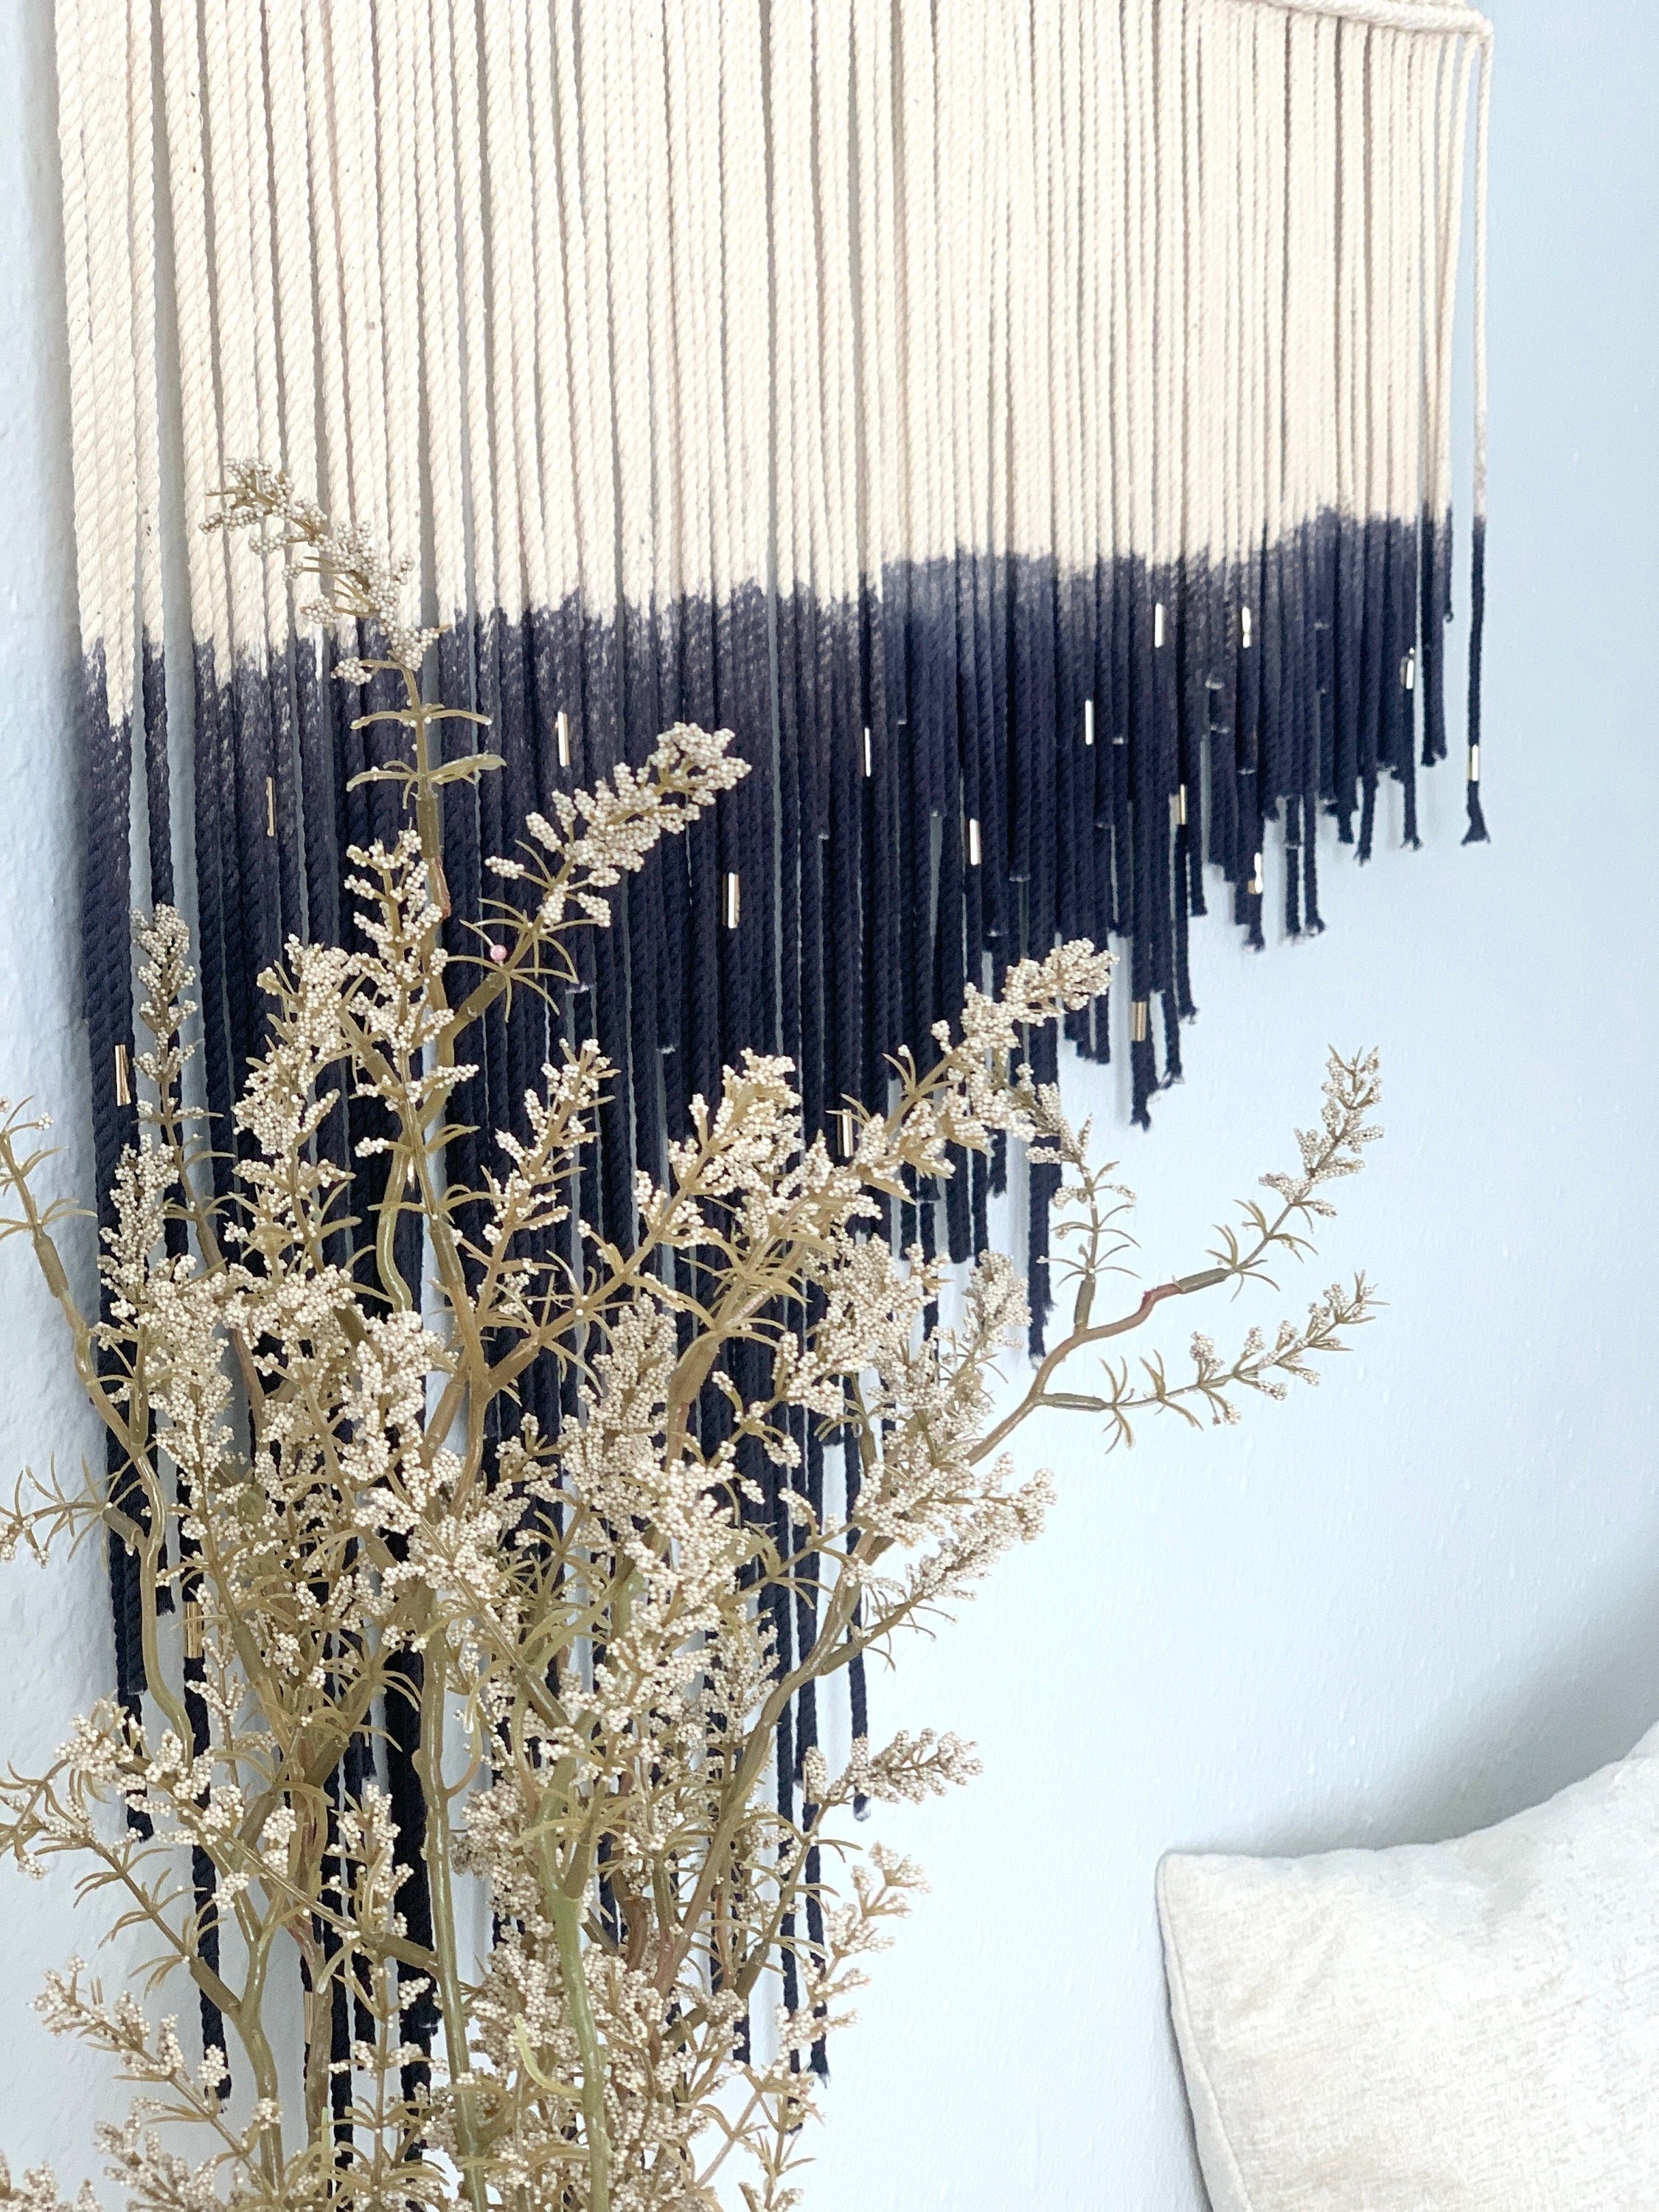 Large Black Staggered Macrame Wall Hanging, Modern Macrame Wall Art, Black Macrame, Fiber Art, Boho Decor, Modern Home Decor